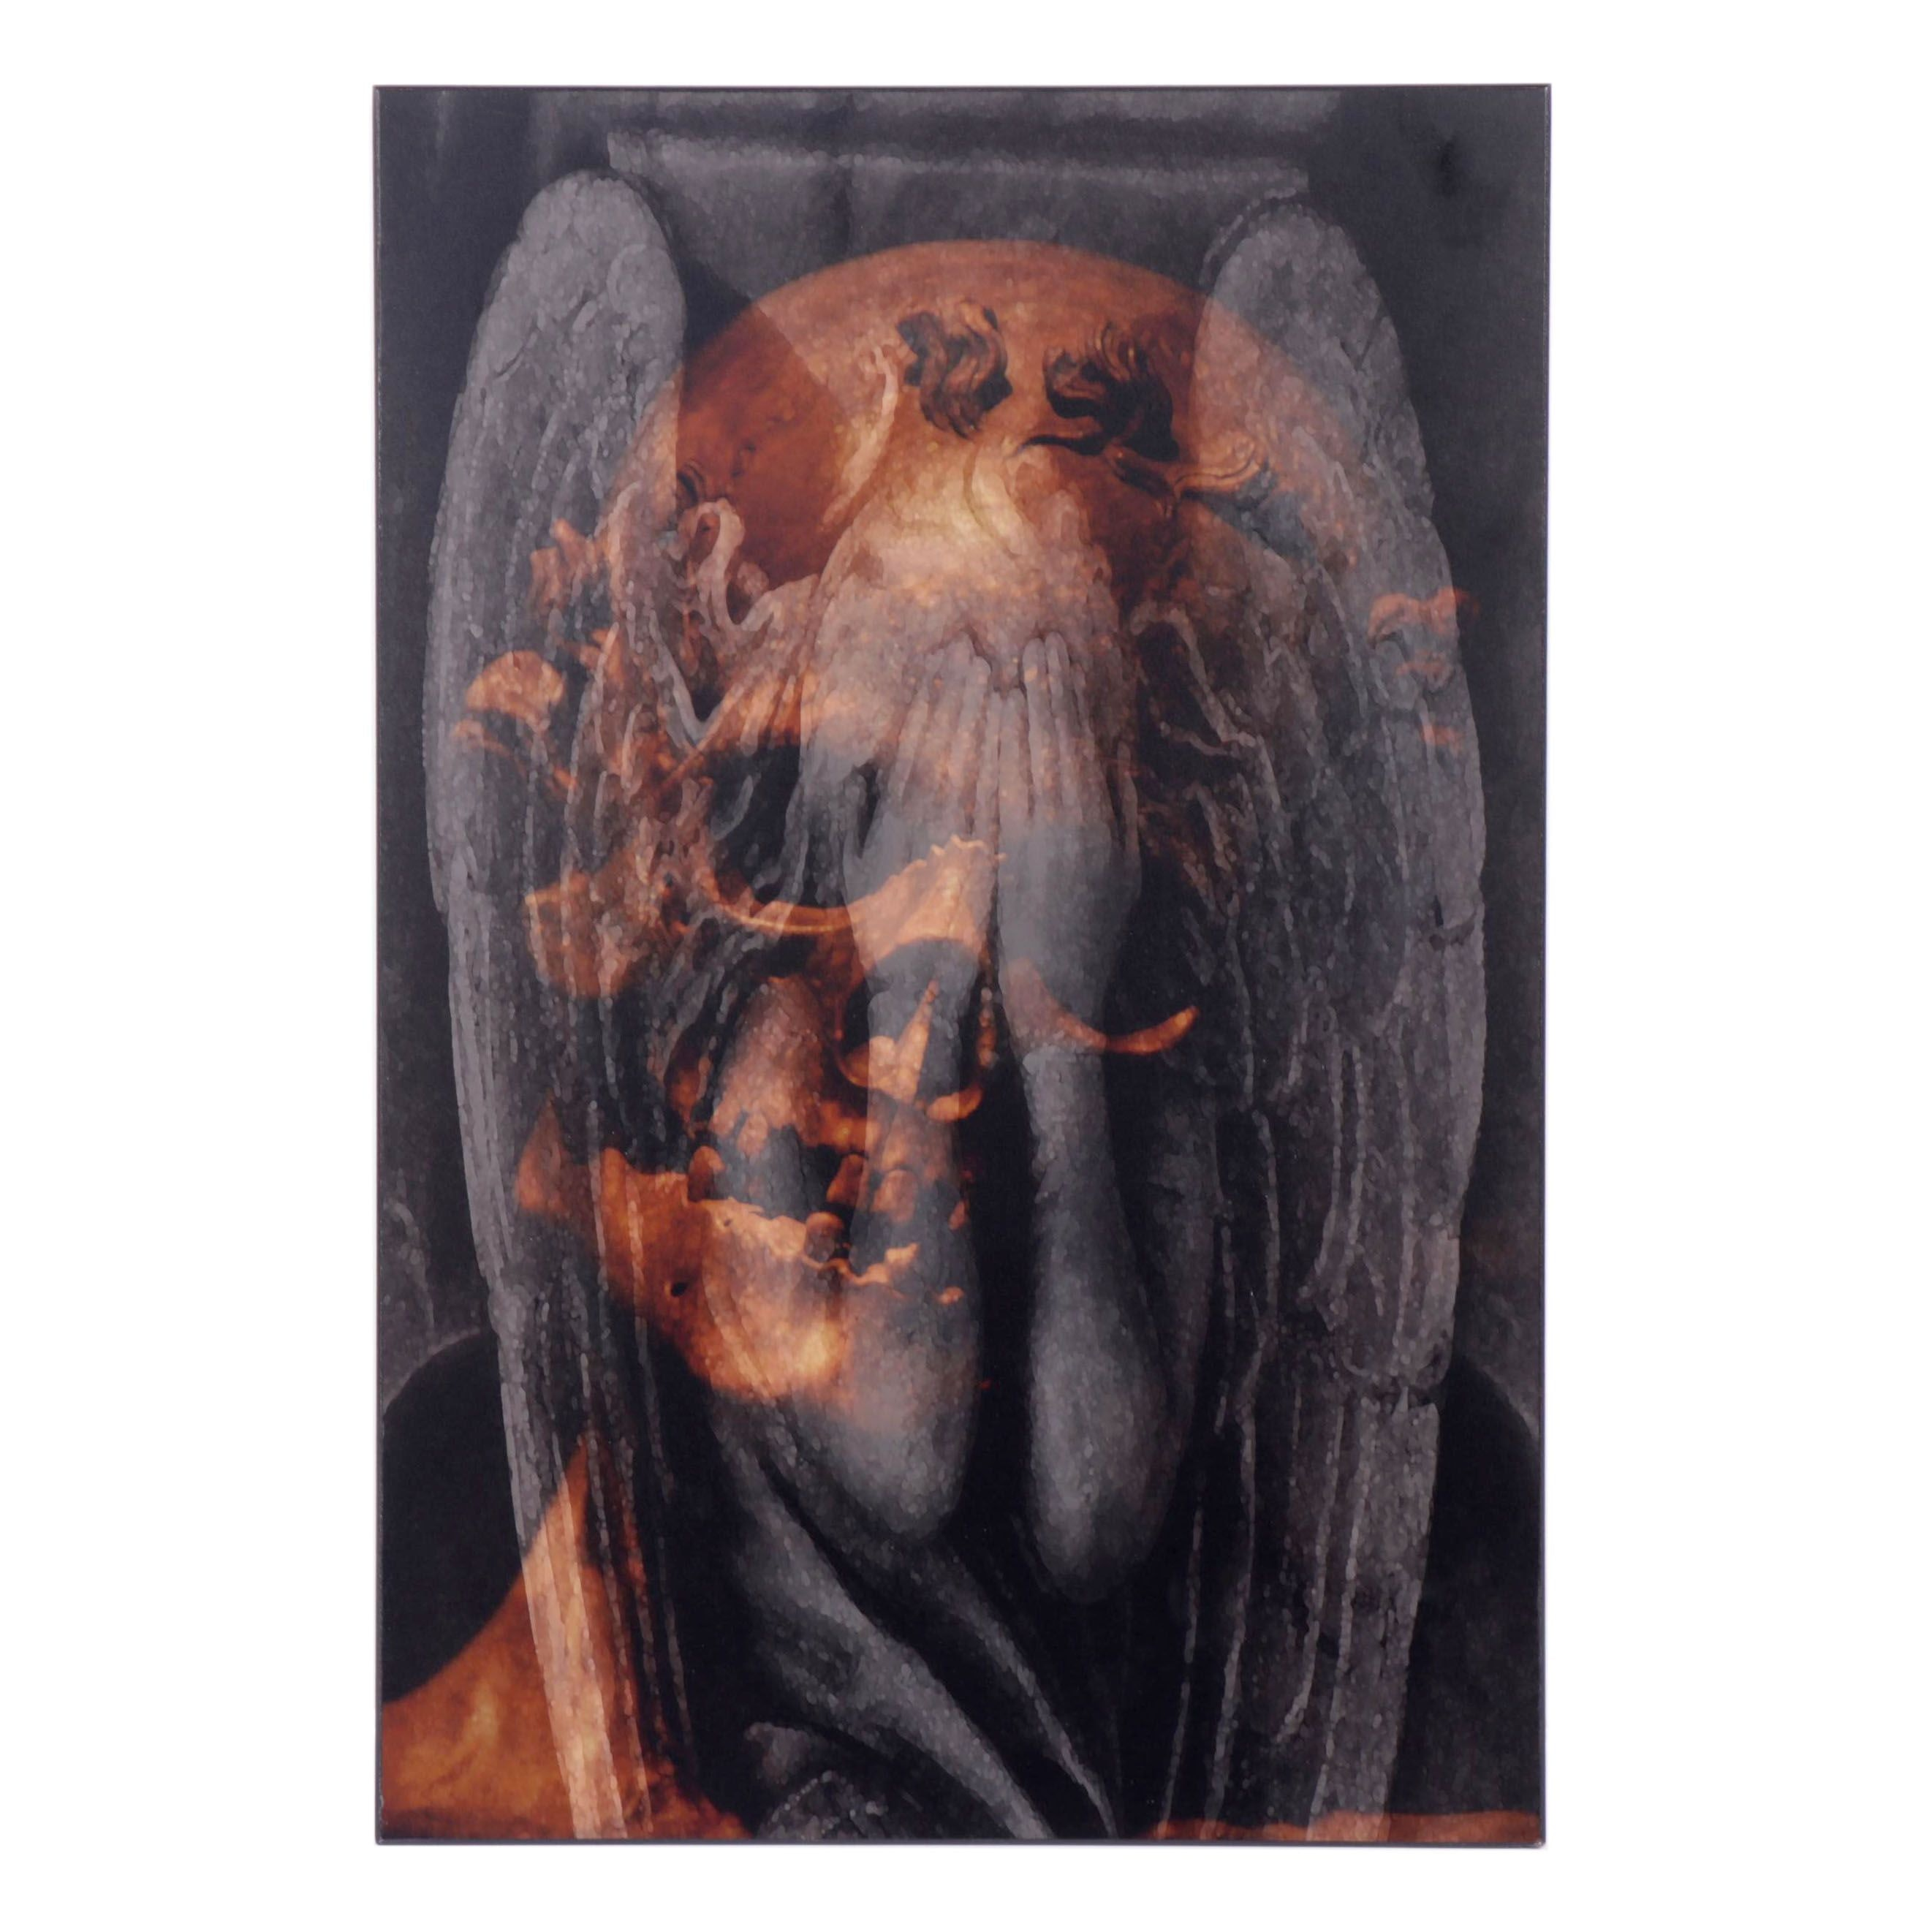 Victoria A. Marchio Skull and Angel Mixed Media Photograph